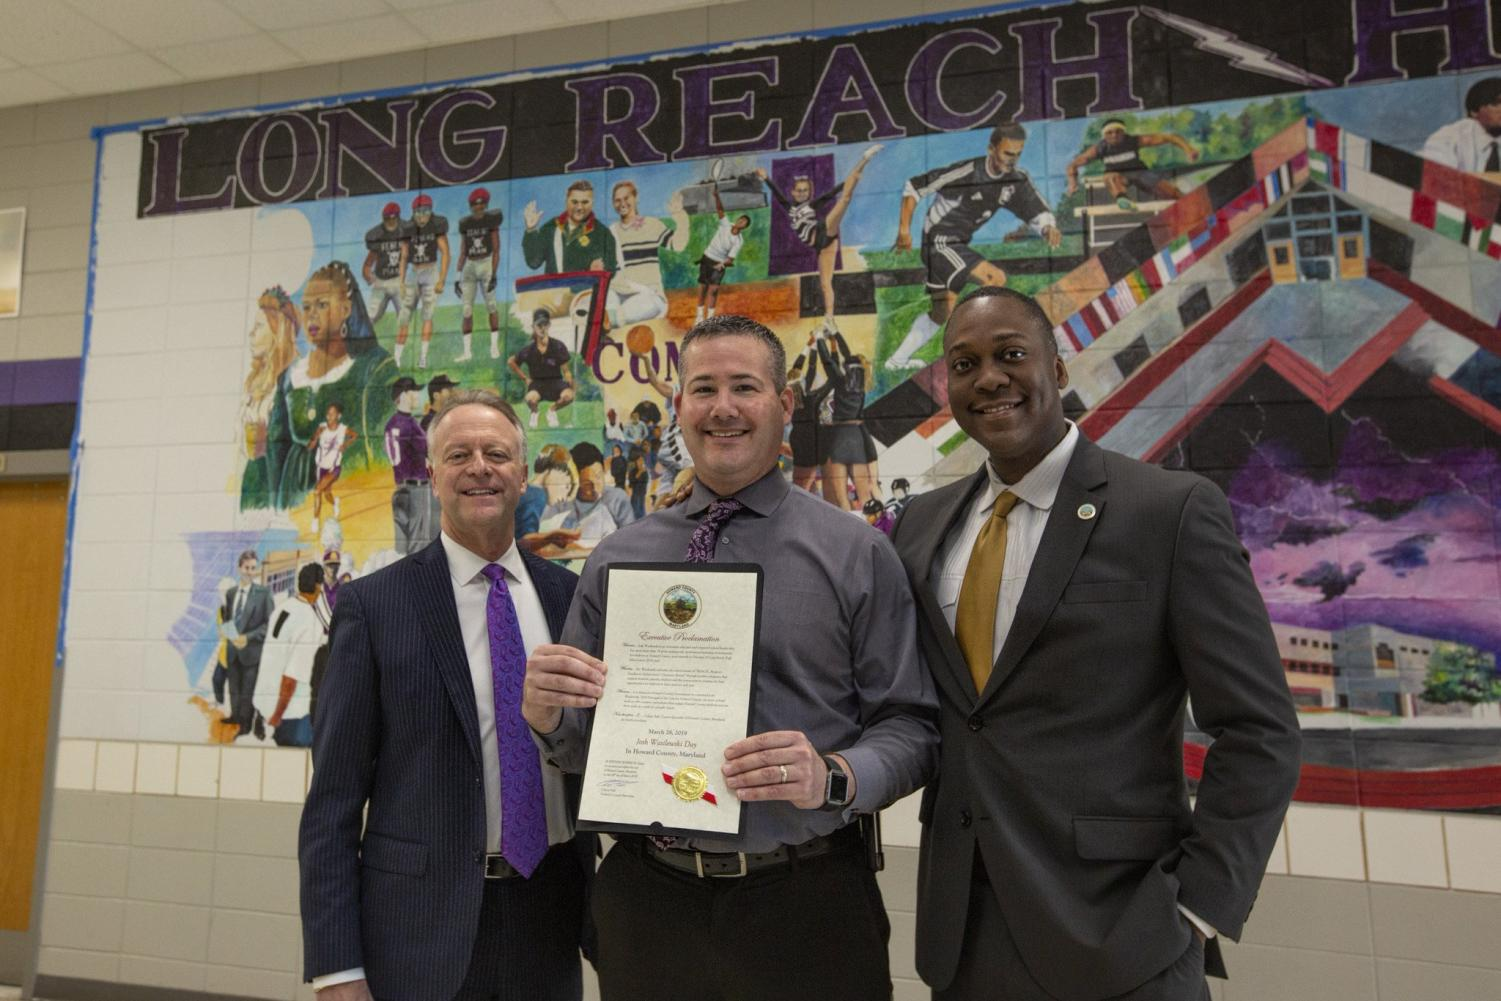 Principal Wasilewski (center) being presented with the award by Superintendent Martirano (left) and County Executive Calvin Ball (right). Photo courtesy of Long Reach High School.